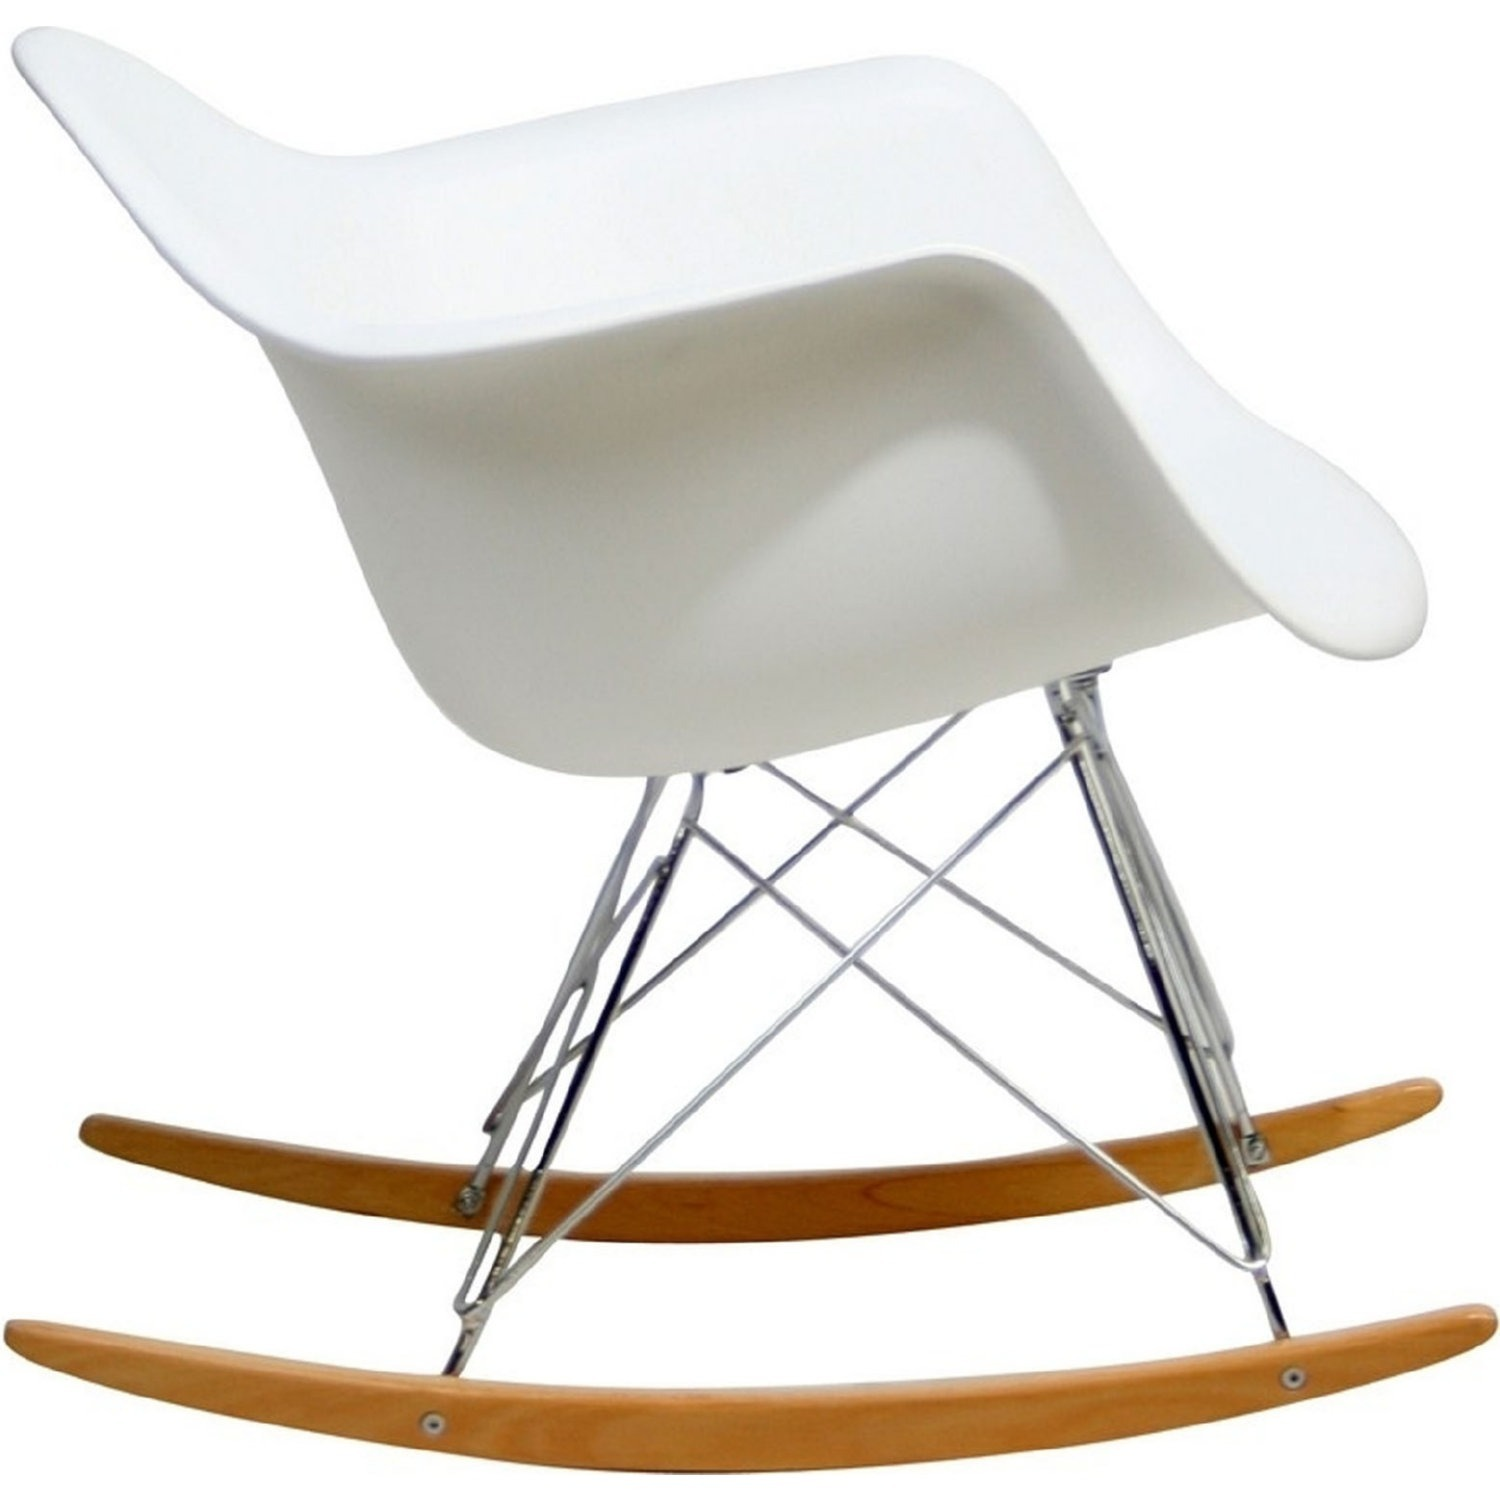 Accent Chair In White Plastic W/ Chrome Finish - image-2